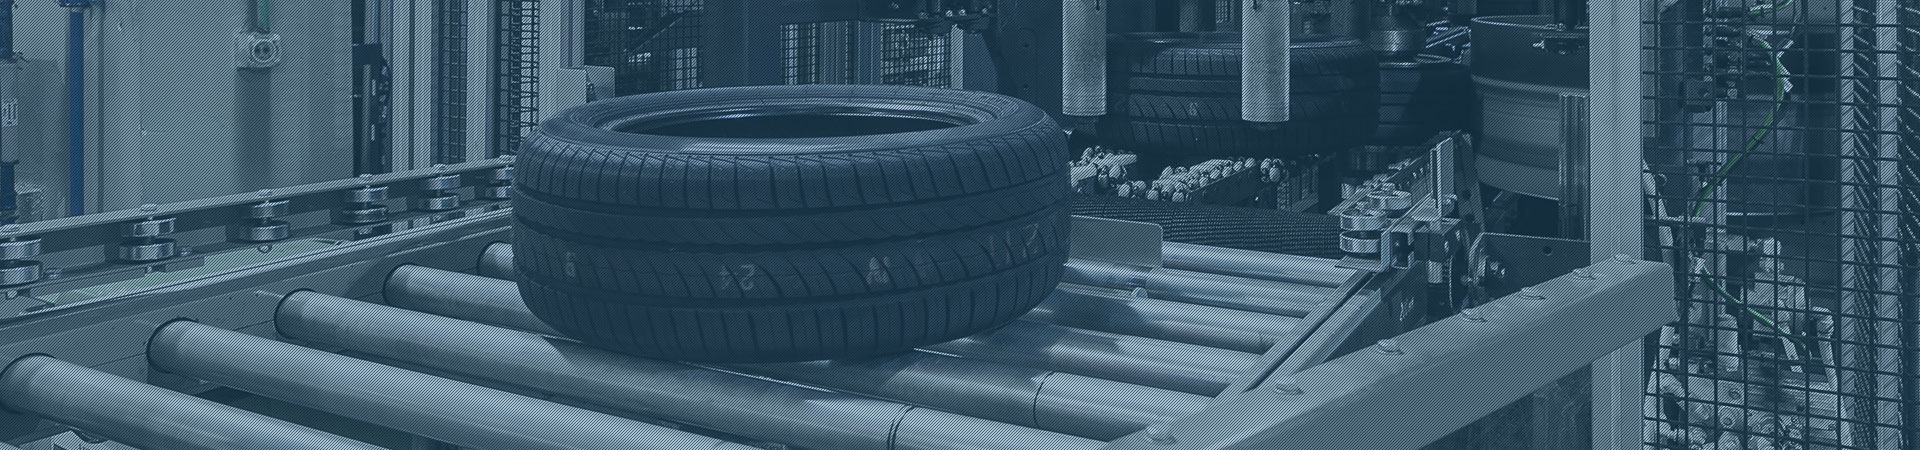 Tire print in the rubber printing industry - full size